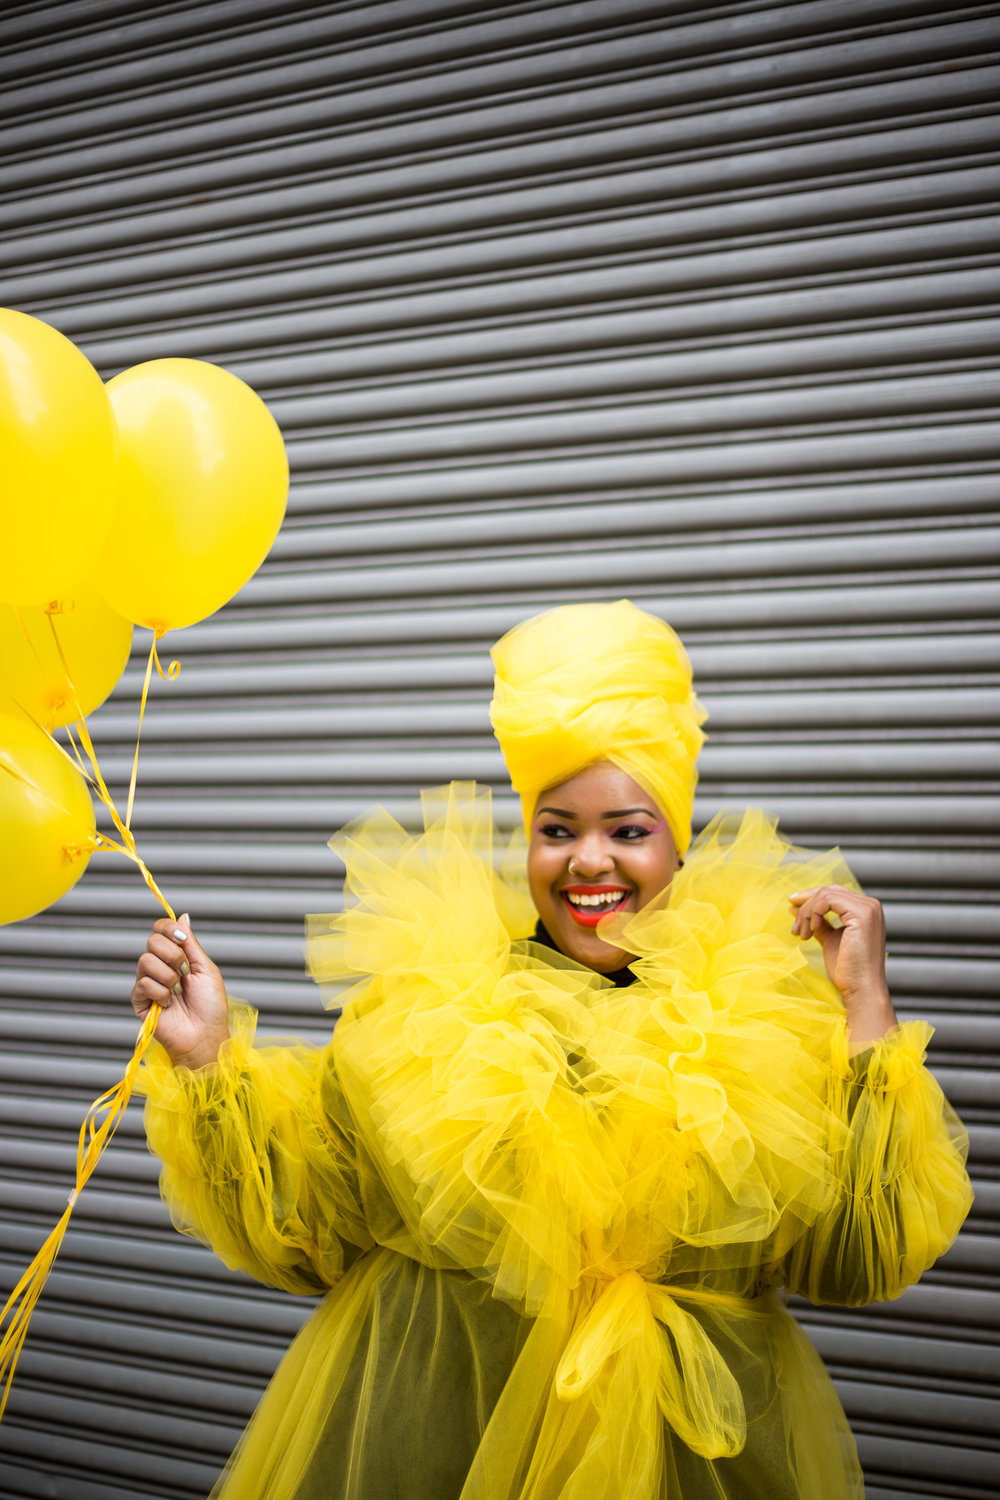 Leah-Vernon-Detroit-Style-Blogger-Muslim-Girl-New-York-Body-Positive-High-Fashion-Monochrome-Yellow-Plus-Size-Model-3.jpg